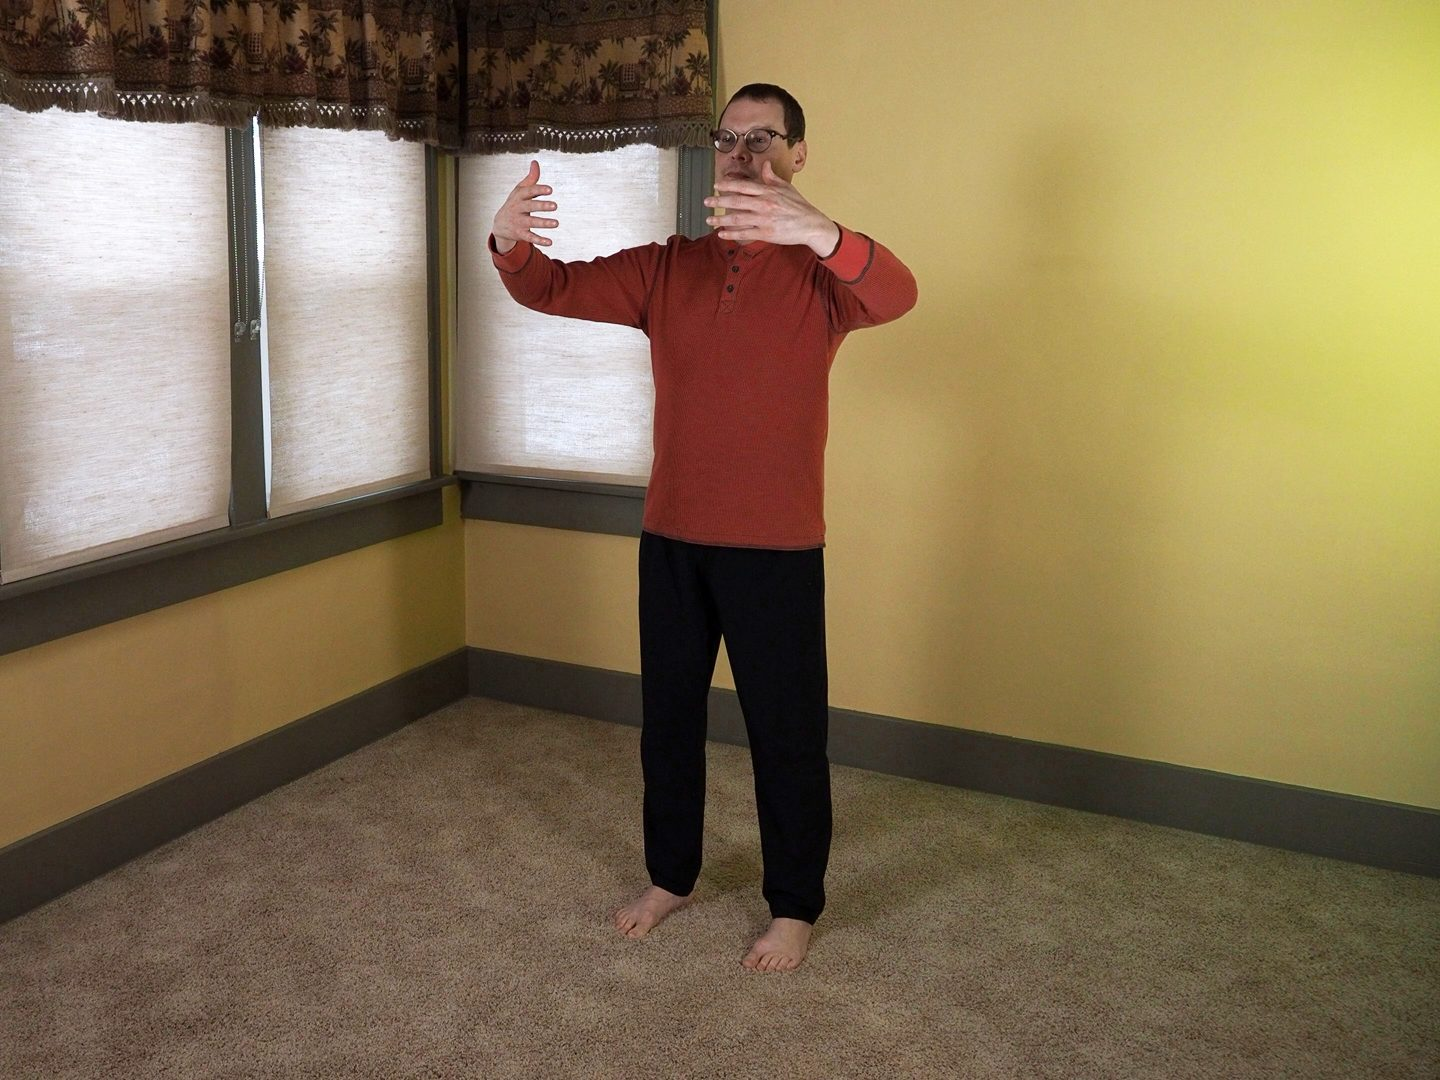 Holding the Moon Posture with Wuji Posture alignments.